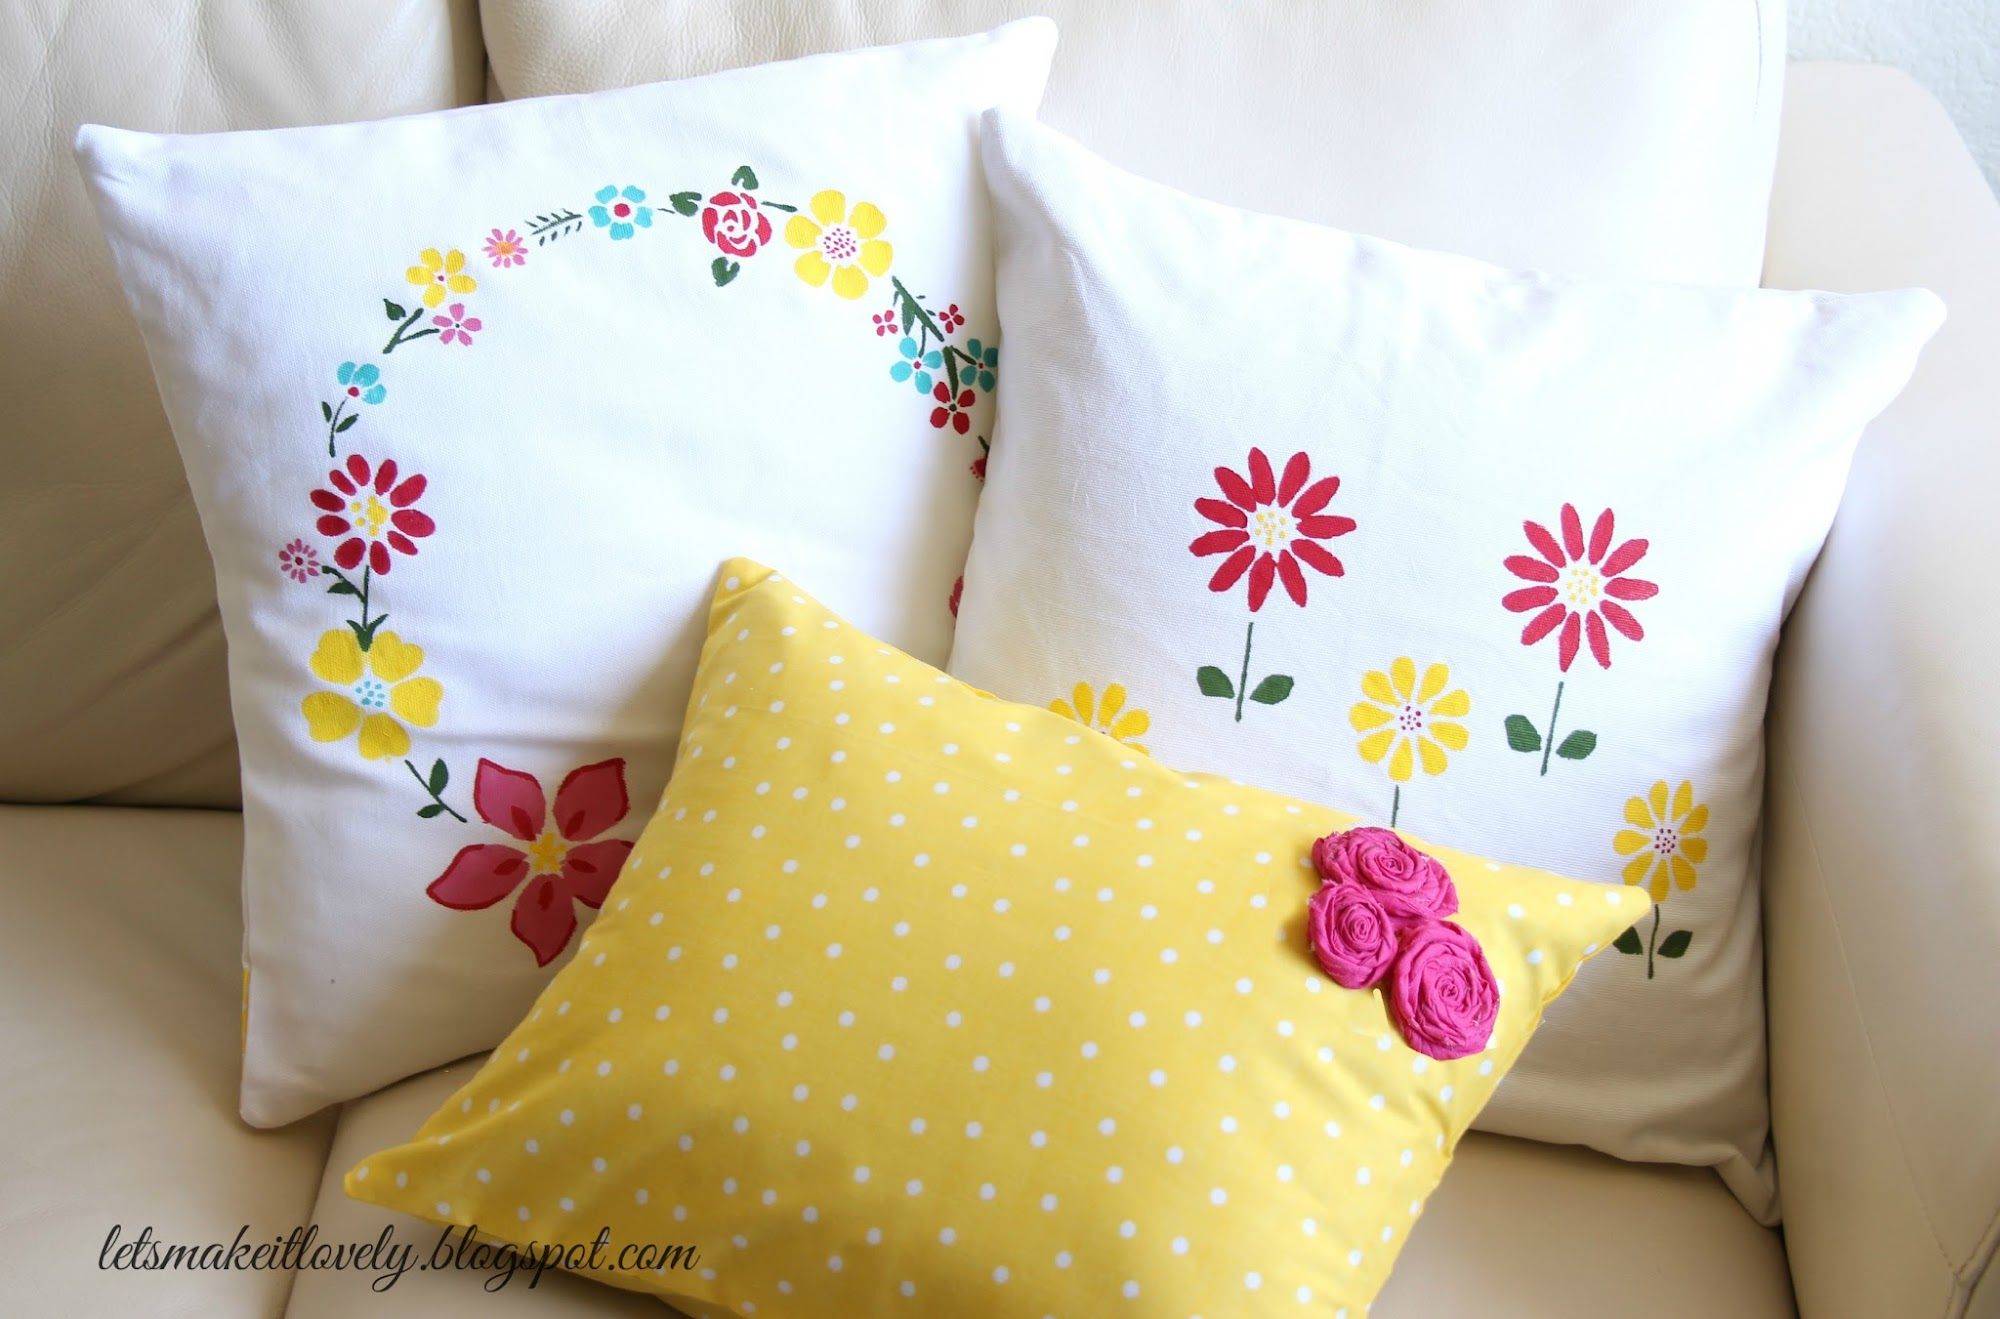 Stenciling and Sewing pillow cover tutorial. Beginner sewing project.